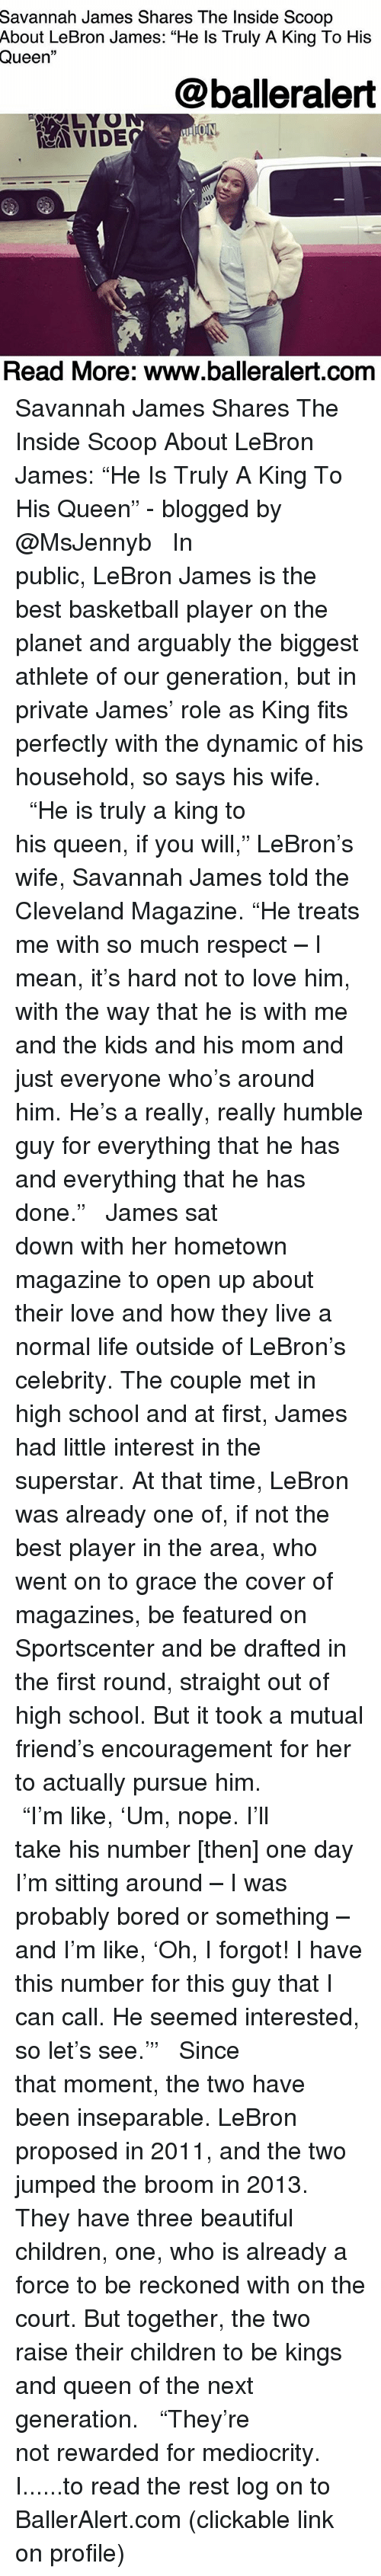 """Basketball, Beautiful, and Bored: Savannah James Shares The Inside Scoop  About LeBron James: """"He ls Truly A King To His  Queen""""  @balleralert  LYO  Read More: www.balleralert.com Savannah James Shares The Inside Scoop About LeBron James: """"He Is Truly A King To His Queen"""" - blogged by @MsJennyb ⠀⠀⠀⠀⠀⠀⠀ ⠀⠀⠀⠀⠀⠀⠀ In public, LeBron James is the best basketball player on the planet and arguably the biggest athlete of our generation, but in private James' role as King fits perfectly with the dynamic of his household, so says his wife. ⠀⠀⠀⠀⠀⠀⠀ ⠀⠀⠀⠀⠀⠀⠀ """"He is truly a king to his queen, if you will,"""" LeBron's wife, Savannah James told the Cleveland Magazine. """"He treats me with so much respect – I mean, it's hard not to love him, with the way that he is with me and the kids and his mom and just everyone who's around him. He's a really, really humble guy for everything that he has and everything that he has done."""" ⠀⠀⠀⠀⠀⠀⠀ ⠀⠀⠀⠀⠀⠀⠀ James sat down with her hometown magazine to open up about their love and how they live a normal life outside of LeBron's celebrity. The couple met in high school and at first, James had little interest in the superstar. At that time, LeBron was already one of, if not the best player in the area, who went on to grace the cover of magazines, be featured on Sportscenter and be drafted in the first round, straight out of high school. But it took a mutual friend's encouragement for her to actually pursue him. ⠀⠀⠀⠀⠀⠀⠀ ⠀⠀⠀⠀⠀⠀⠀ """"I'm like, 'Um, nope. I'll take his number [then] one day I'm sitting around – I was probably bored or something – and I'm like, 'Oh, I forgot! I have this number for this guy that I can call. He seemed interested, so let's see.'"""" ⠀⠀⠀⠀⠀⠀⠀ ⠀⠀⠀⠀⠀⠀⠀ Since that moment, the two have been inseparable. LeBron proposed in 2011, and the two jumped the broom in 2013. They have three beautiful children, one, who is already a force to be reckoned with on the court. But together, the two raise their children to be kings and queen of the next gener"""